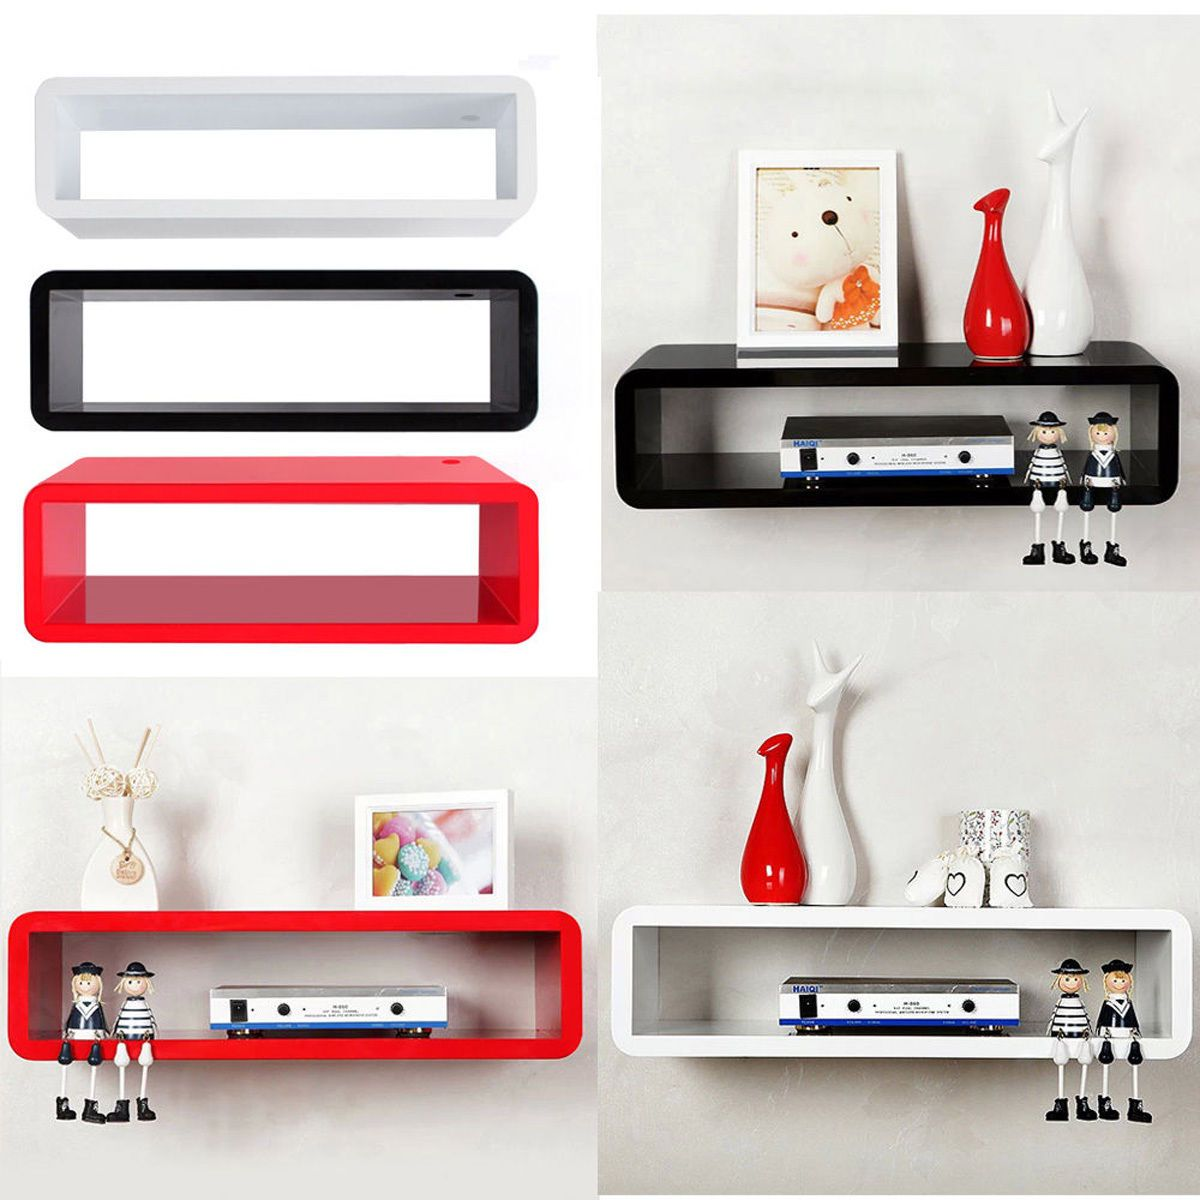 details about floating wall mount shelf cube sky box dvd hifi unit shelves corner with drawer office chair without wheels kallax bookshelf mitre ballarat modern mounted table